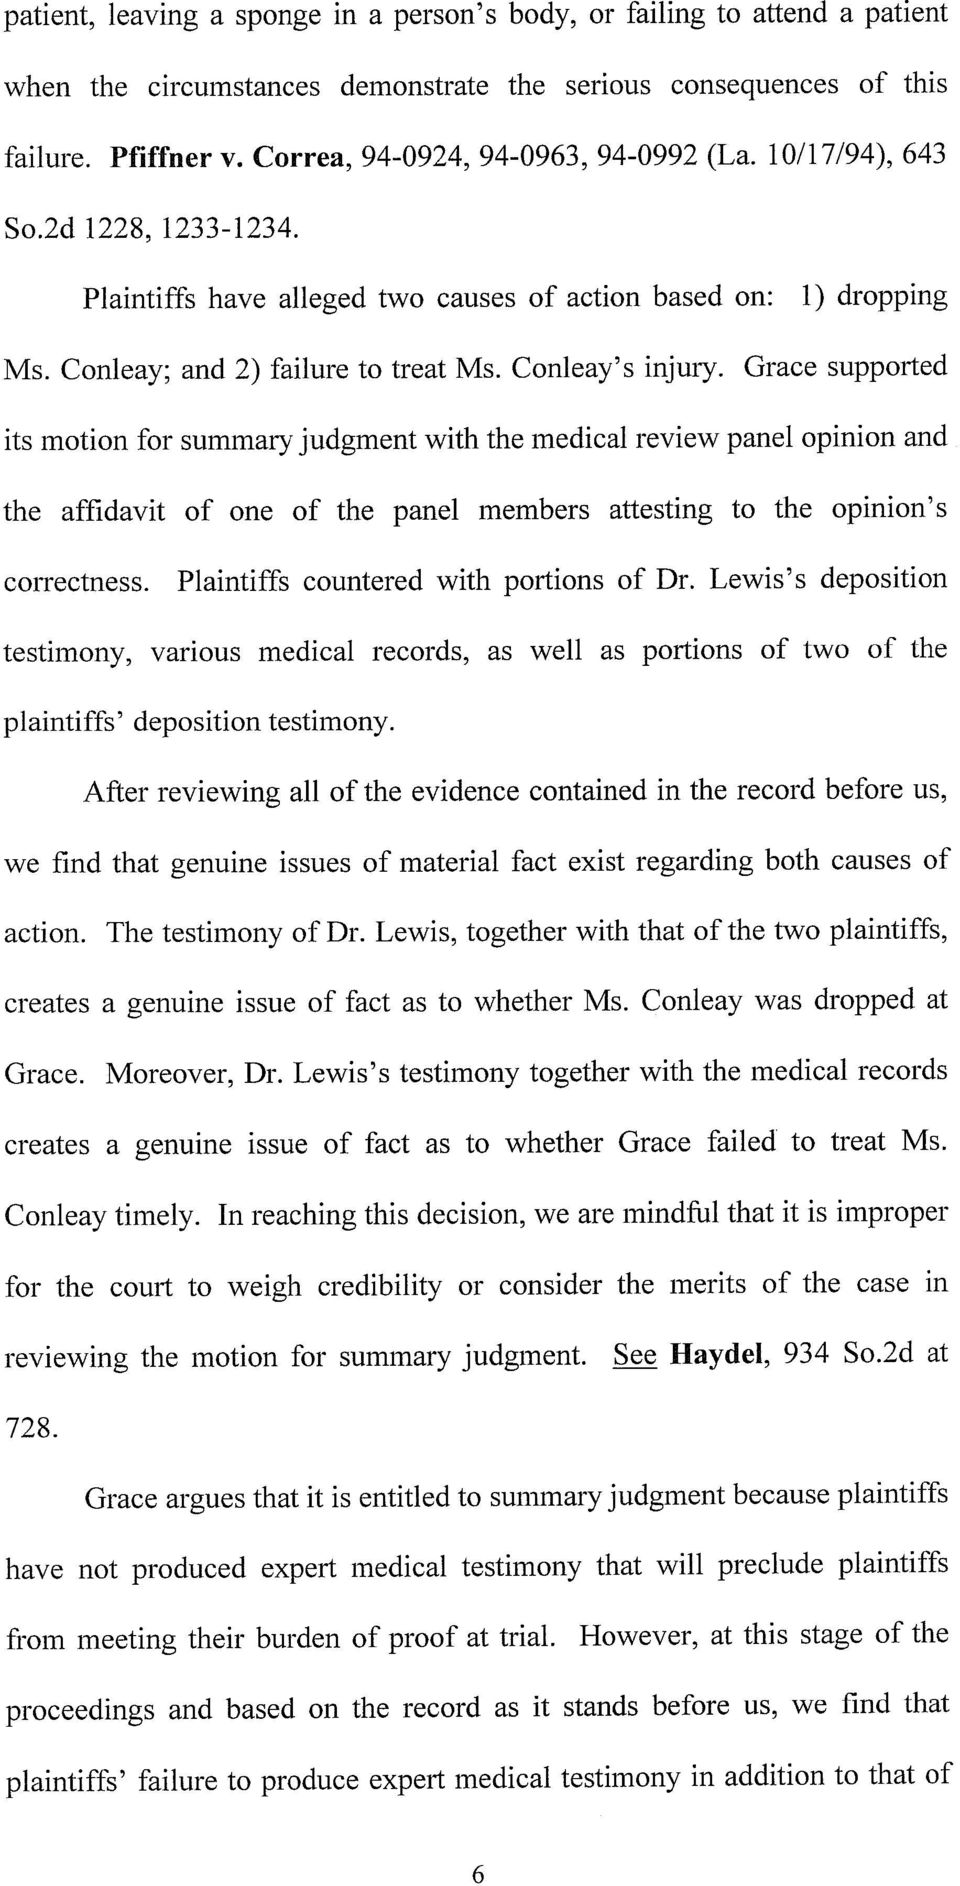 with the medical review panel opinion and the affidavit of one of the panel members attesting to the opinion s COlTectness Plaintiffs countered with portions of Dr Lewis s deposition testimony